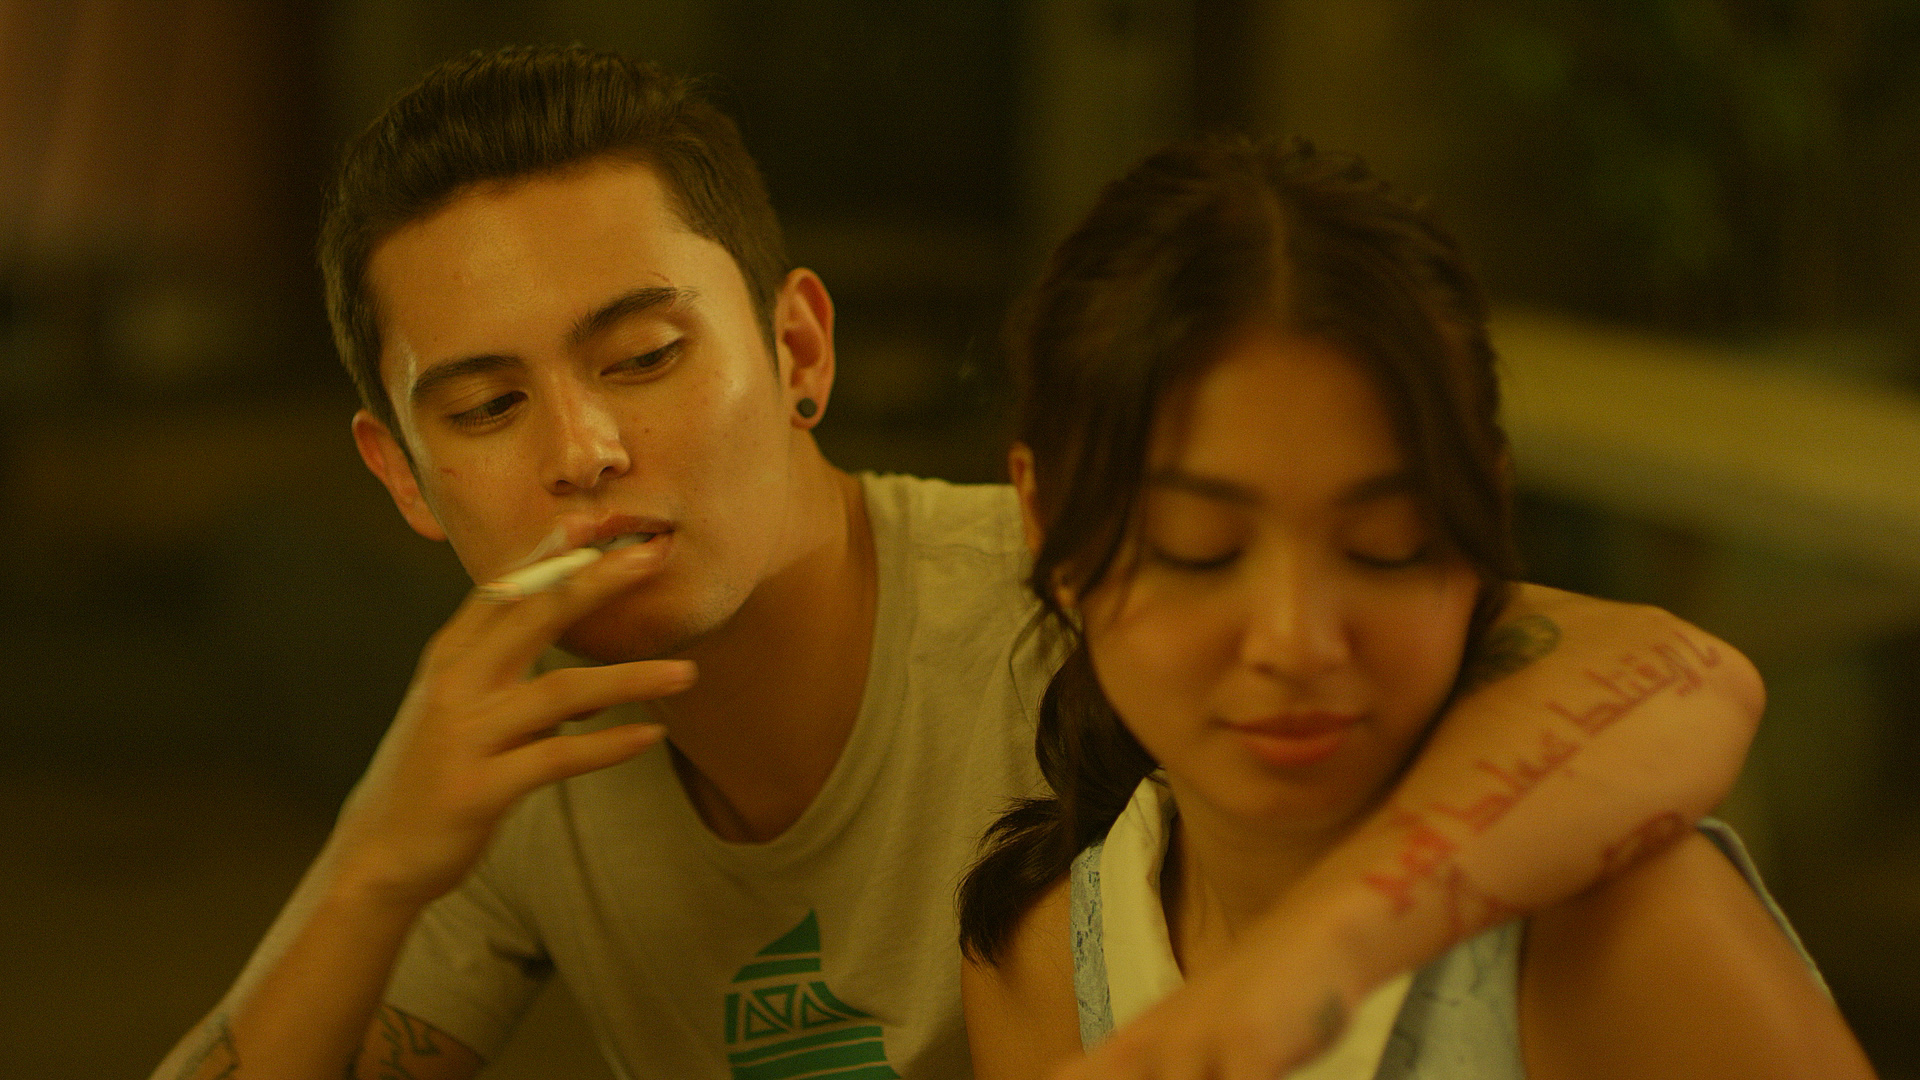 UNLIKELY COUPLE. Gio (James Reid) courts Joanne (Nadine Lustre) after meeting her.